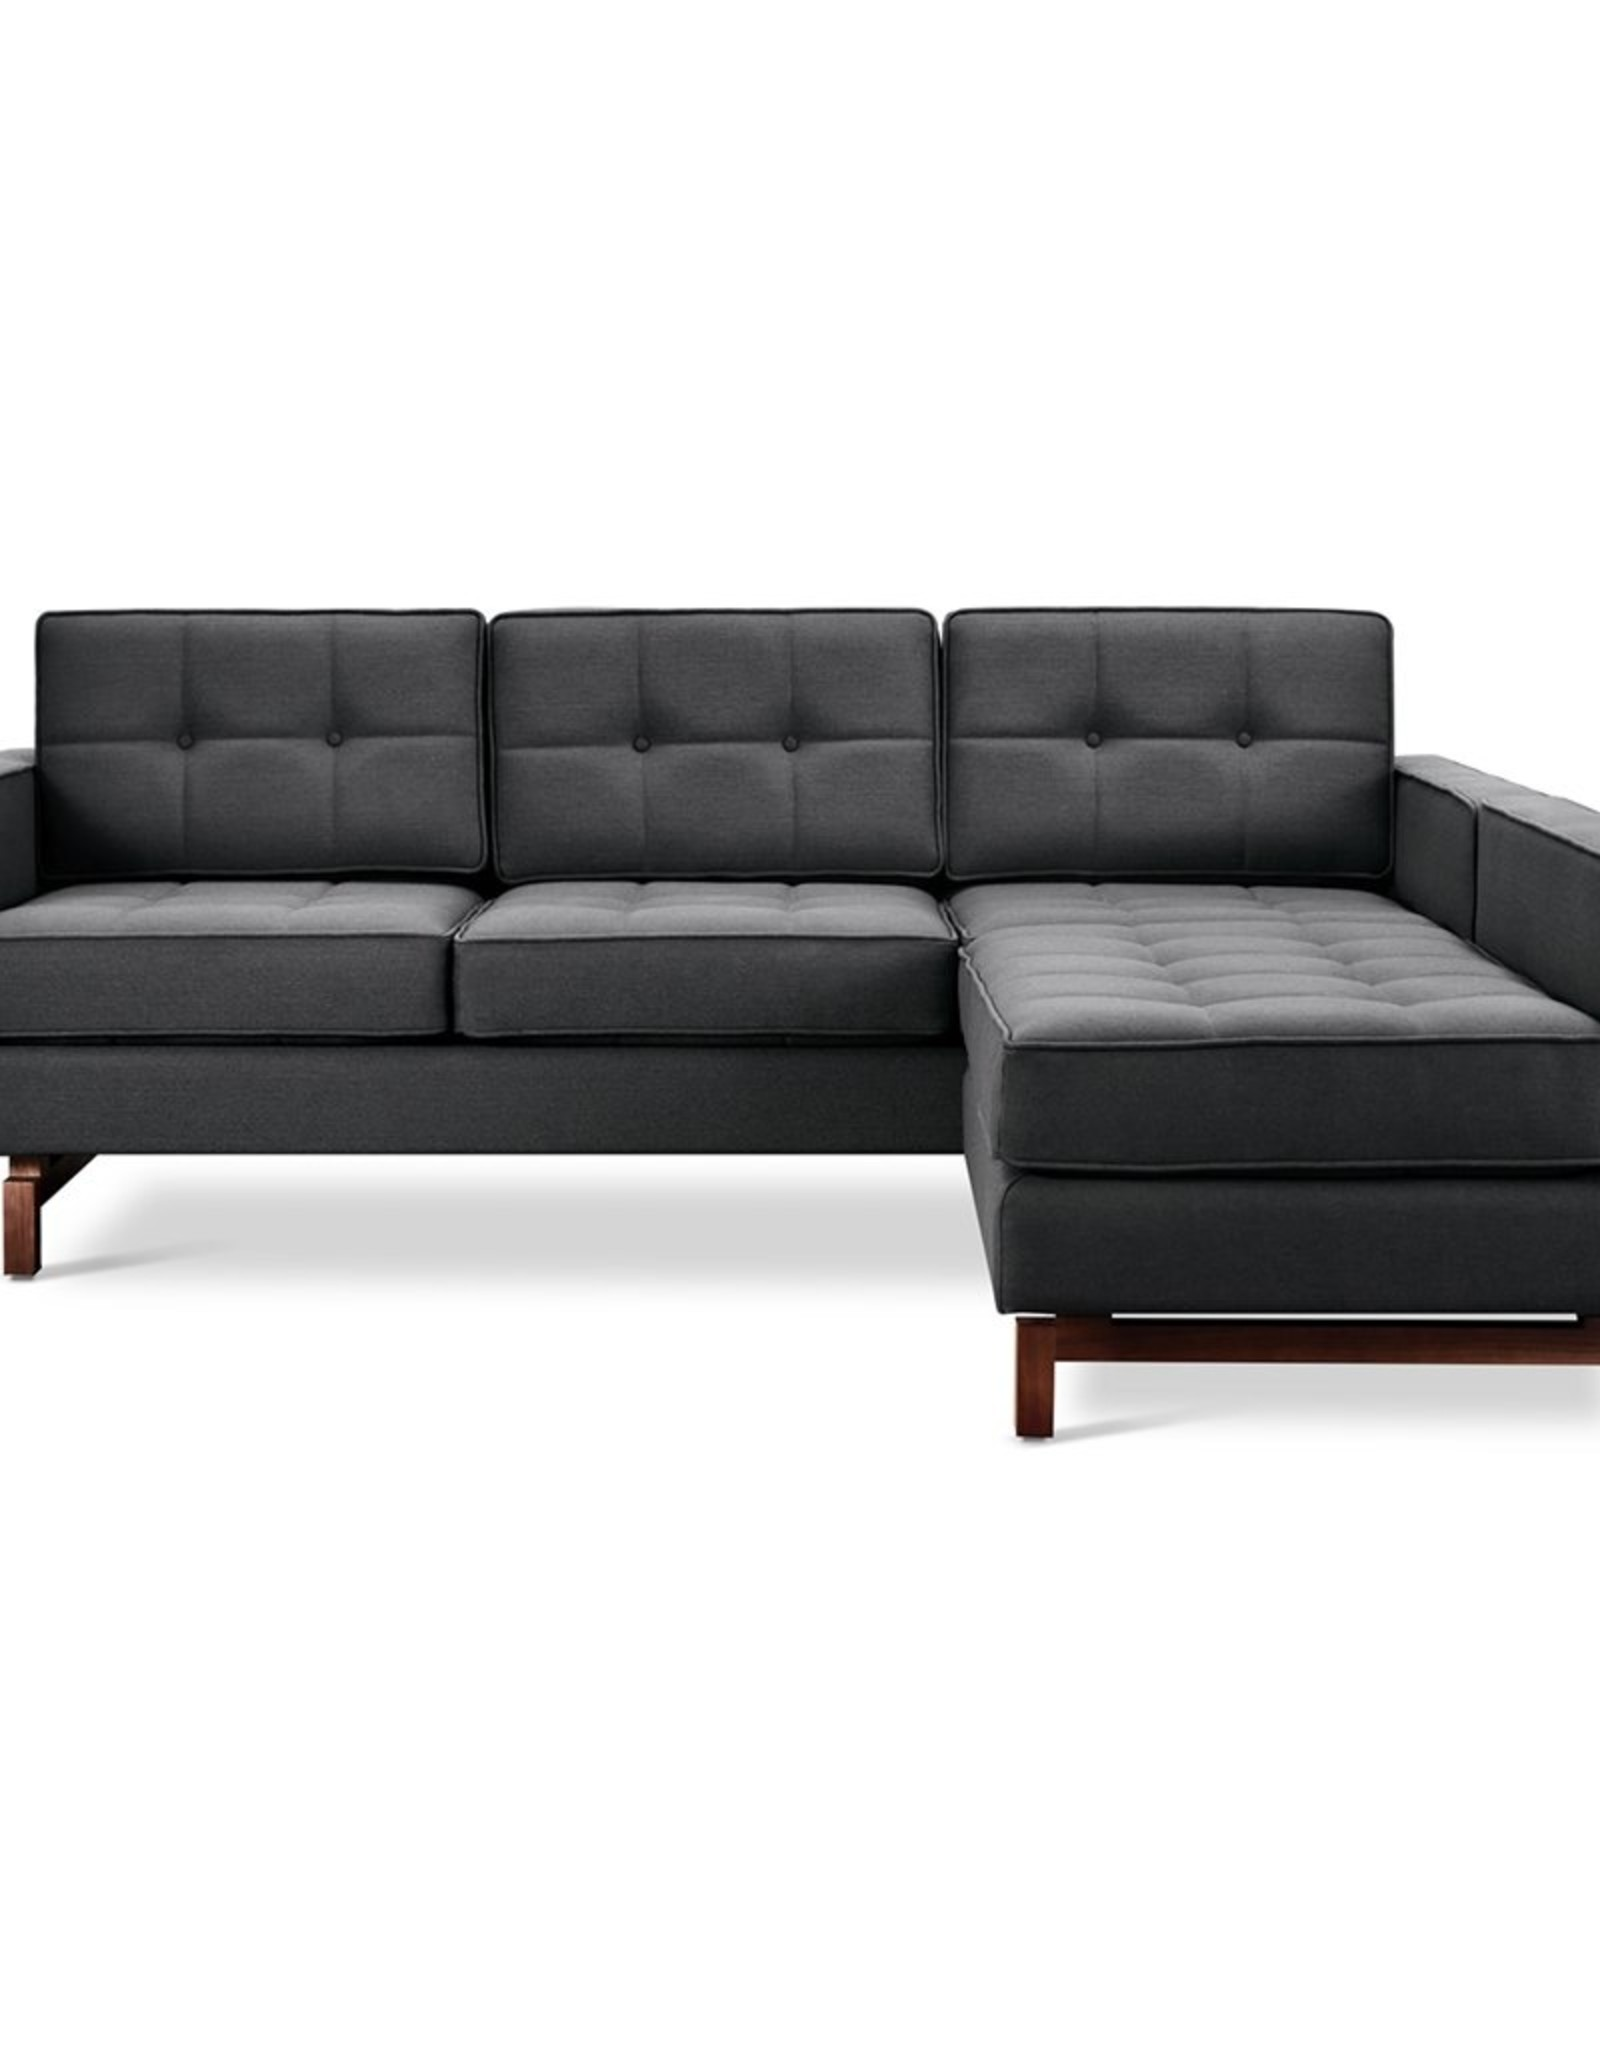 Gus* Modern Jane 2 LOFT Bi-Sectional, Walnut Base